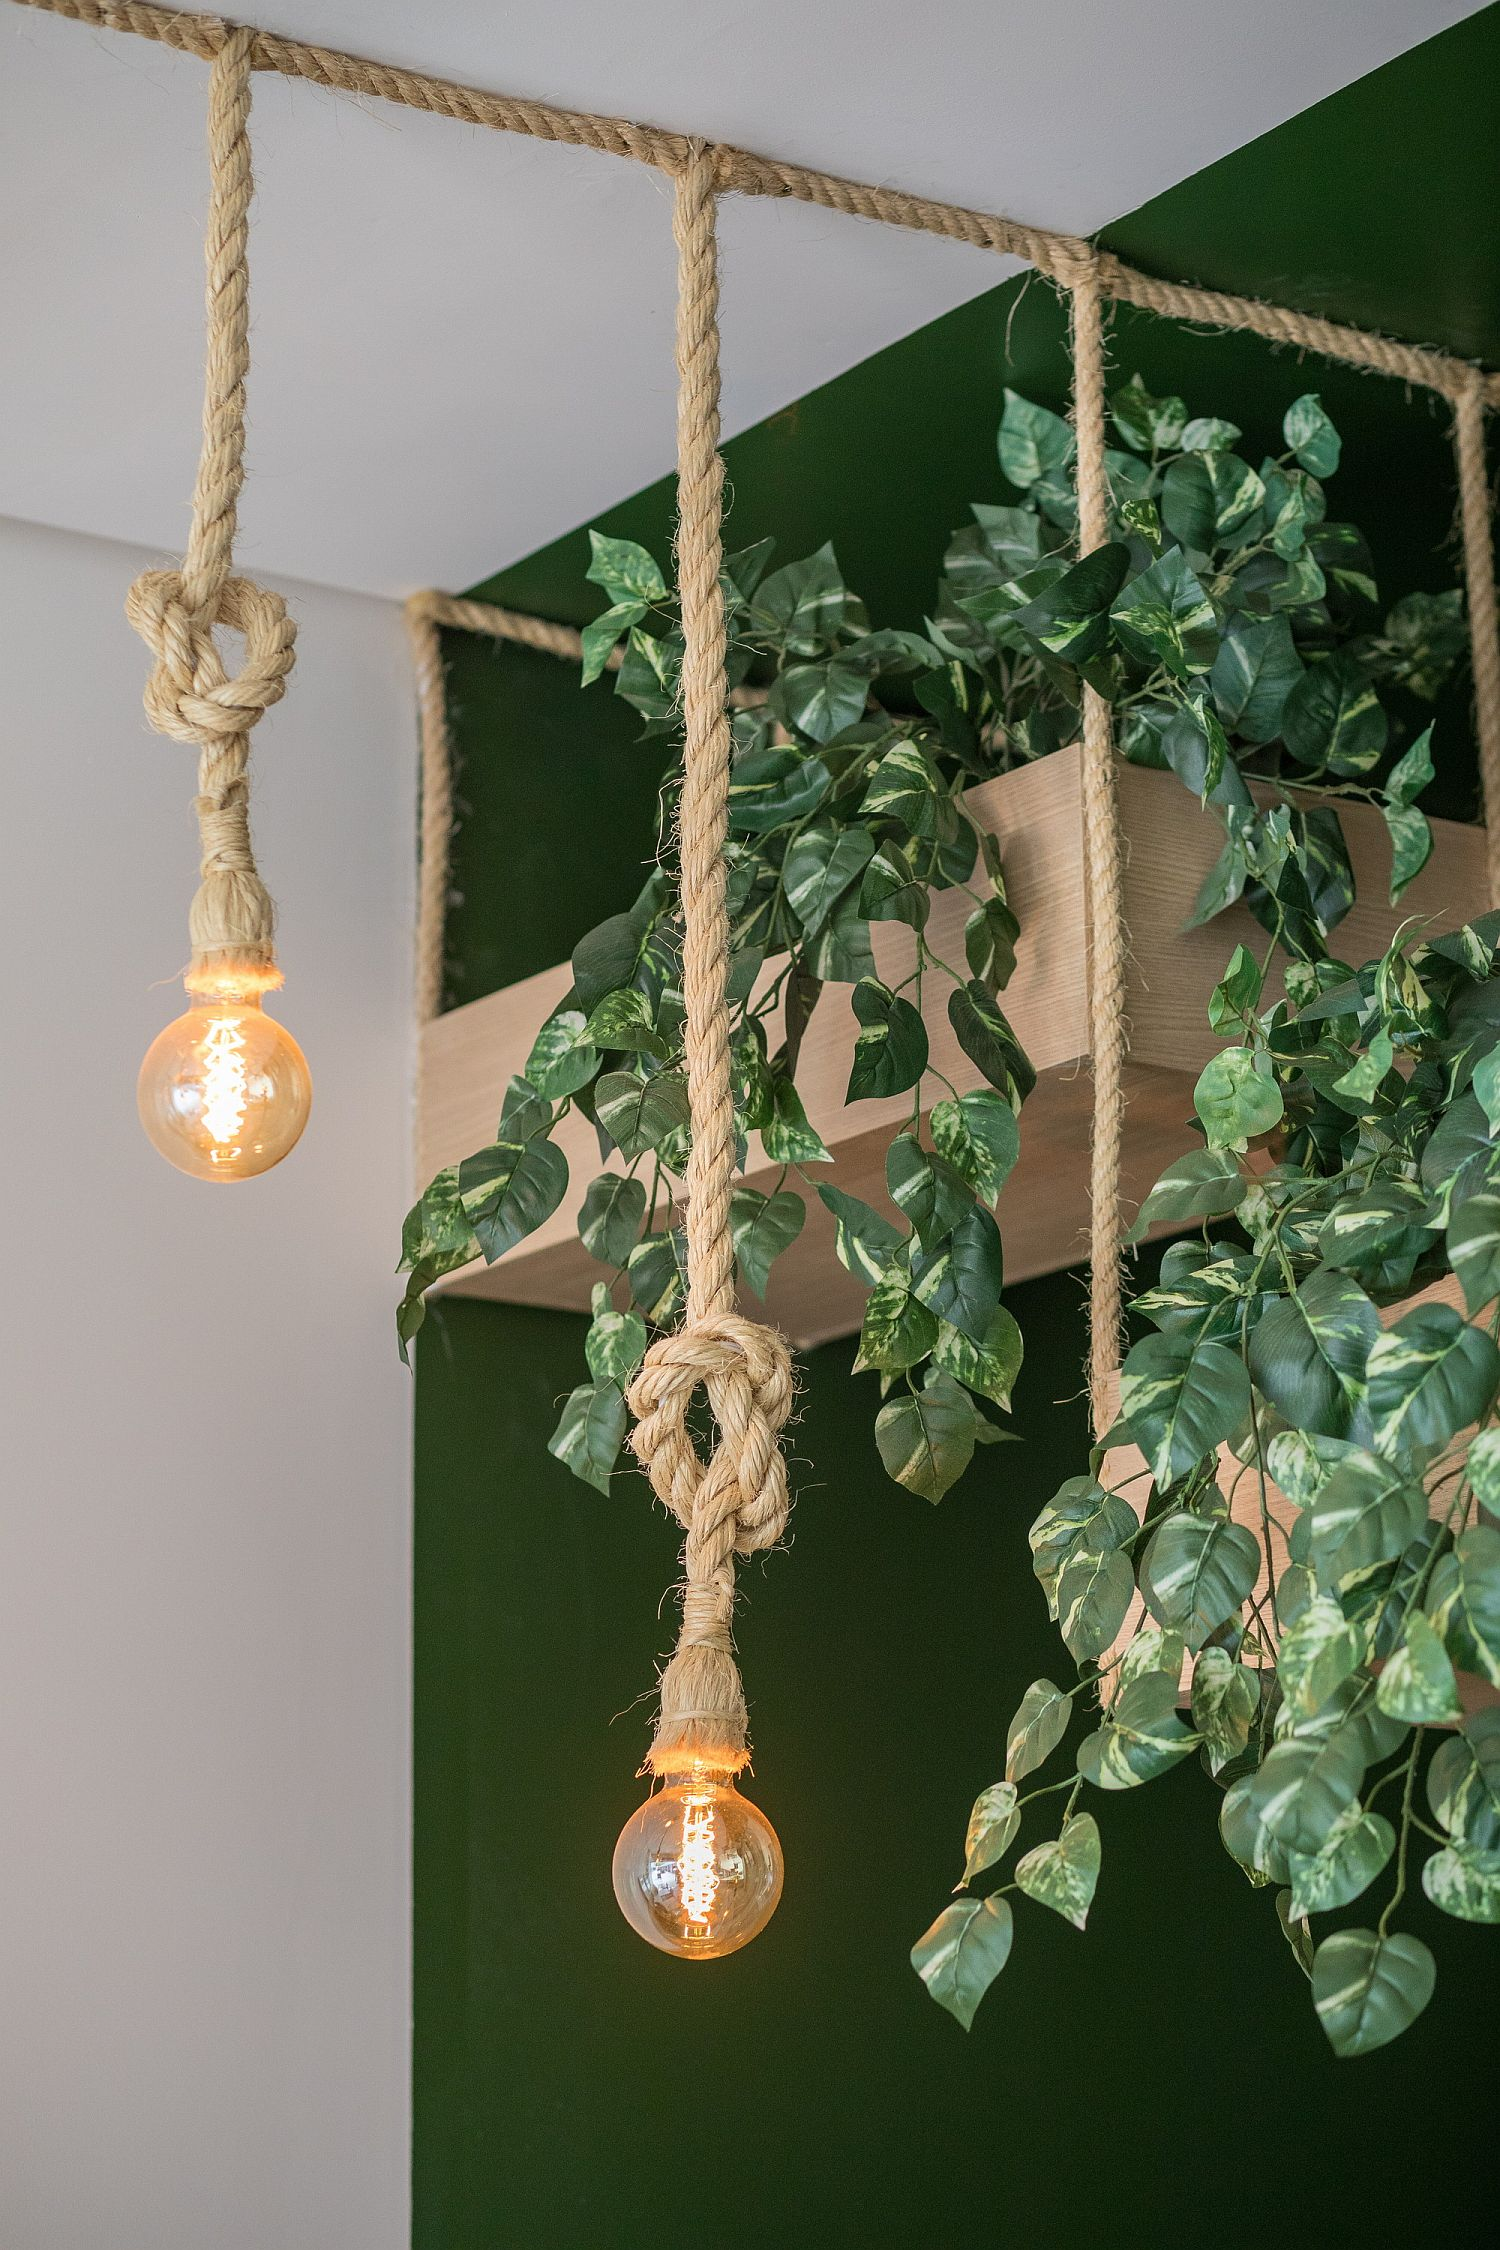 Plants, wood and rope reshape the interior of the cafe